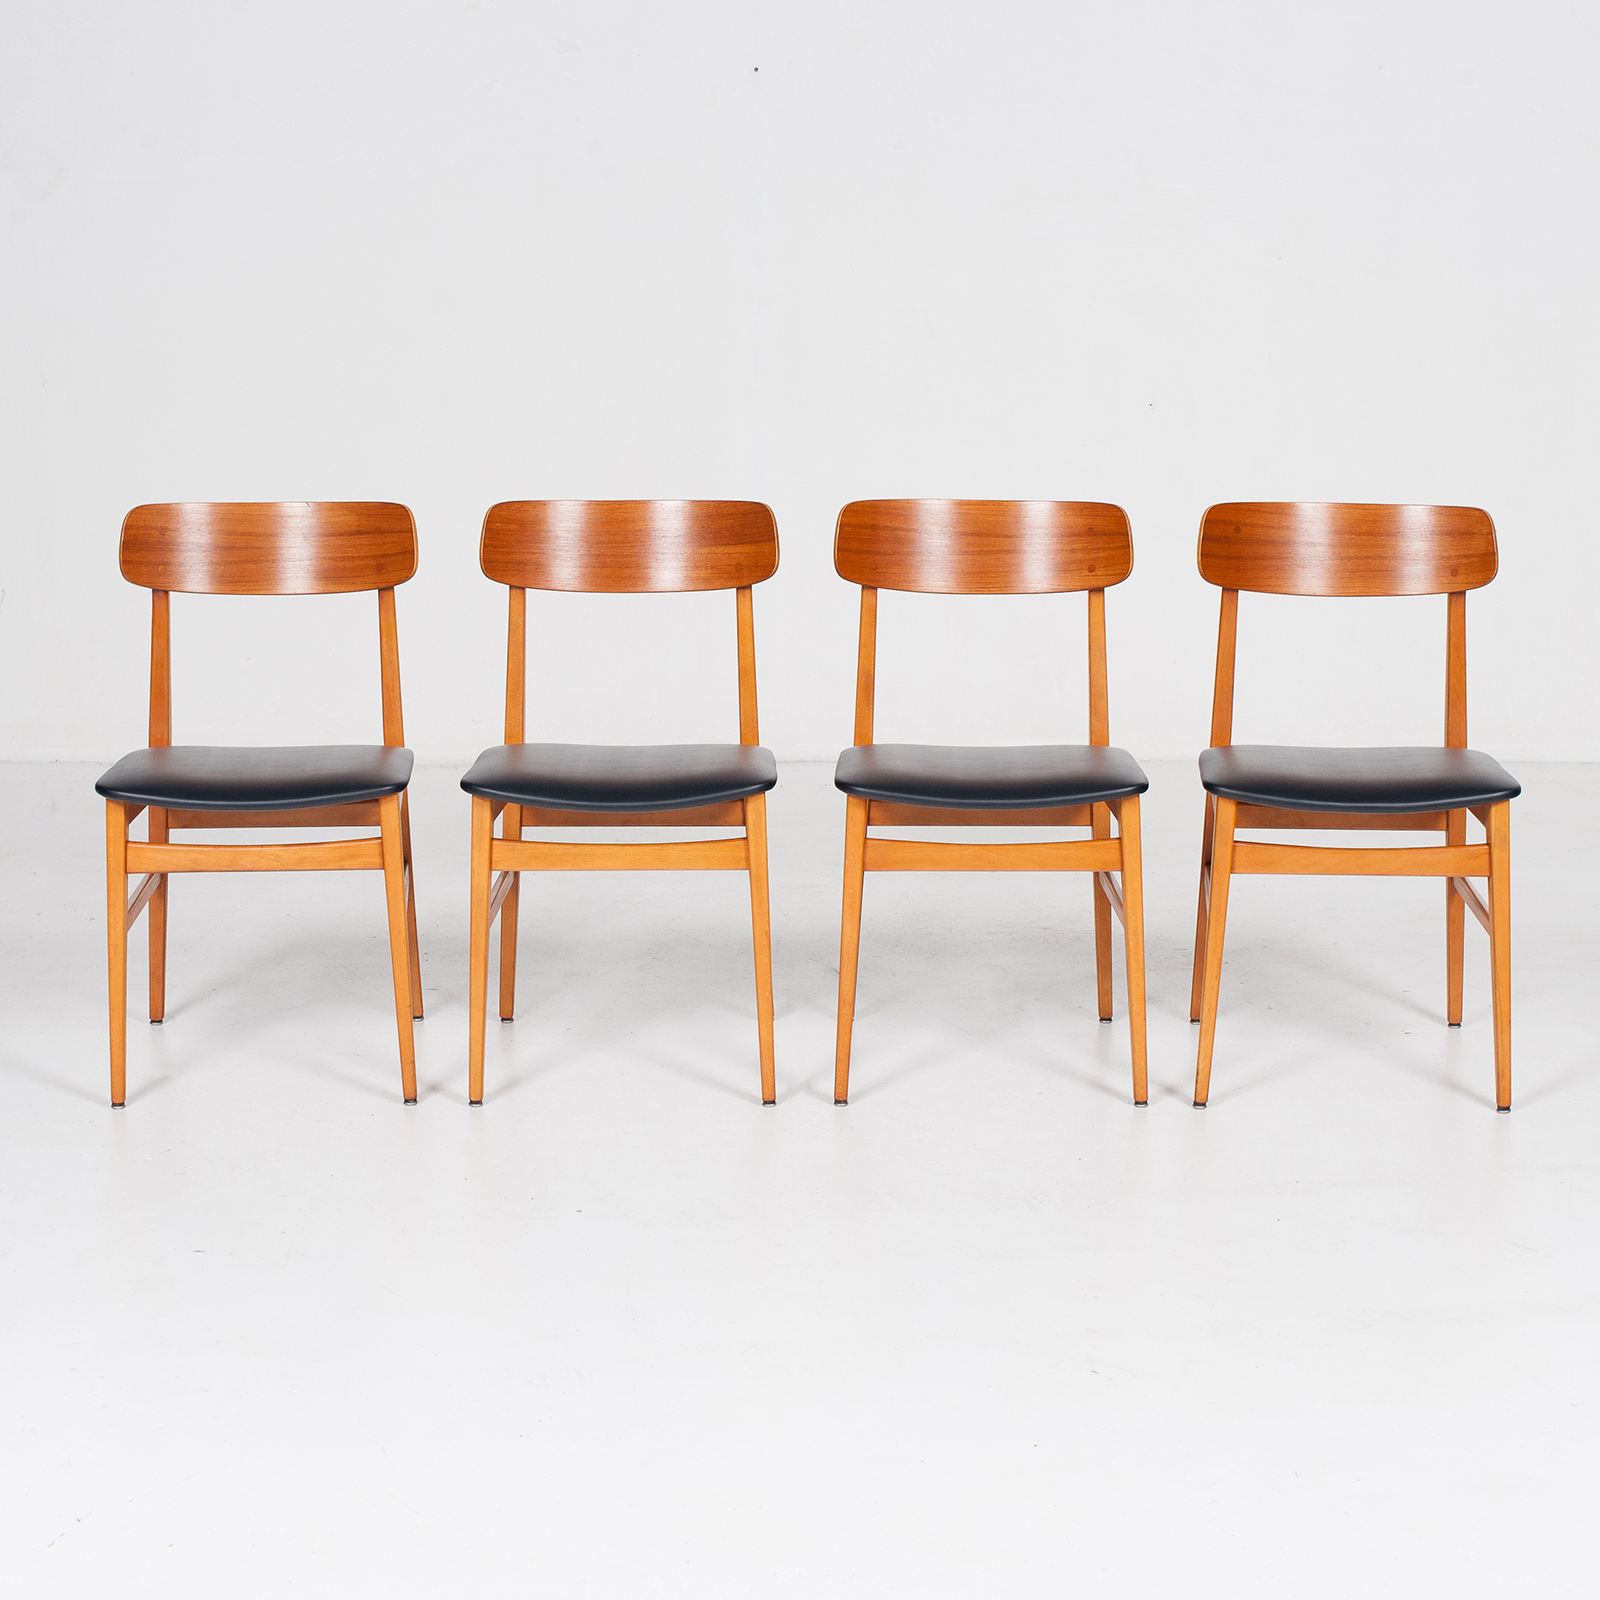 Set Of 4 Dining Chairs In Teak And Beech, 1960s, Denmark8